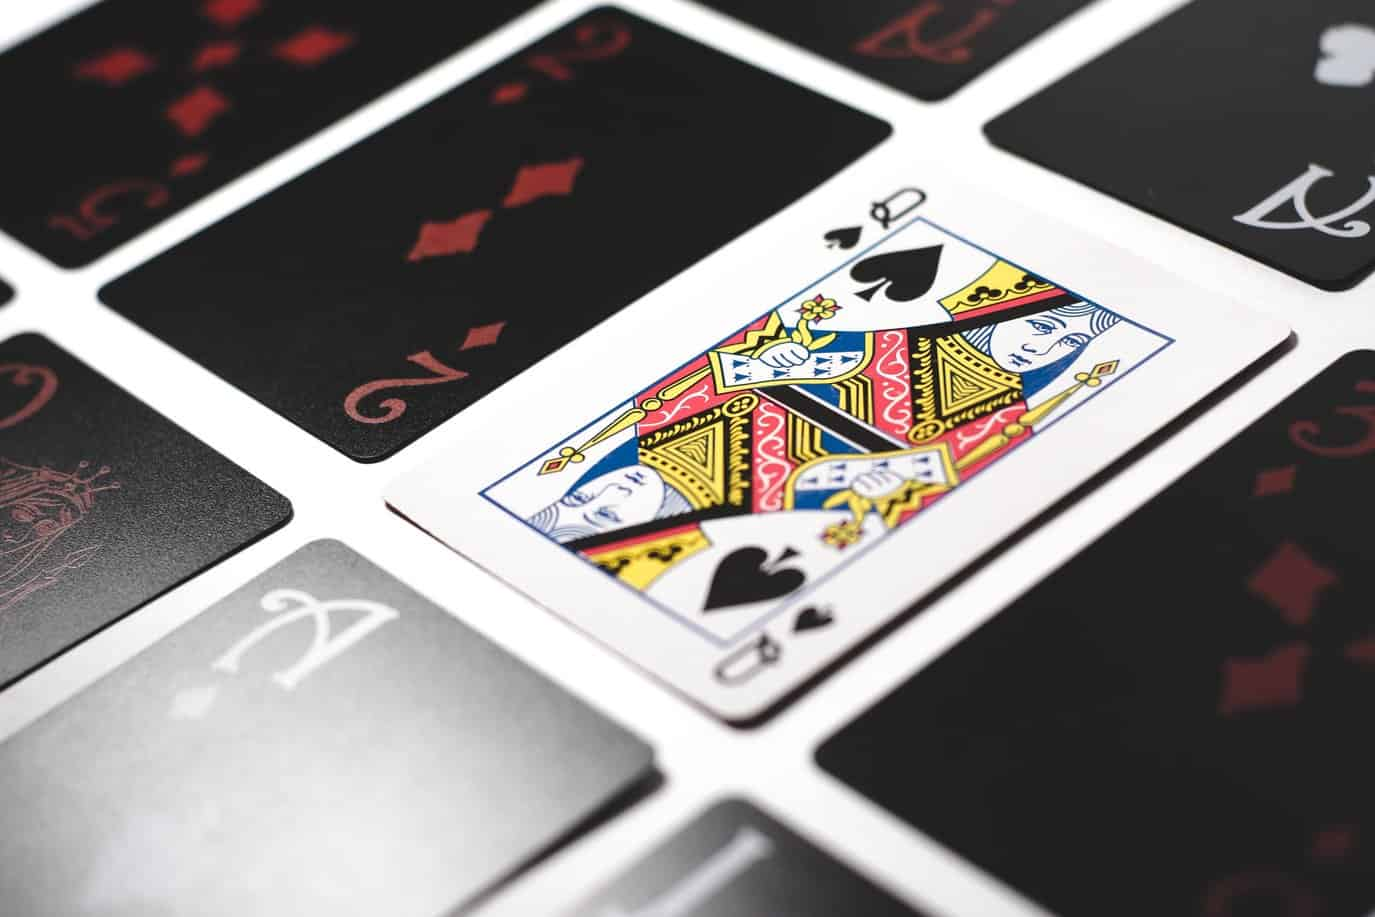 Table games explained - cards image.